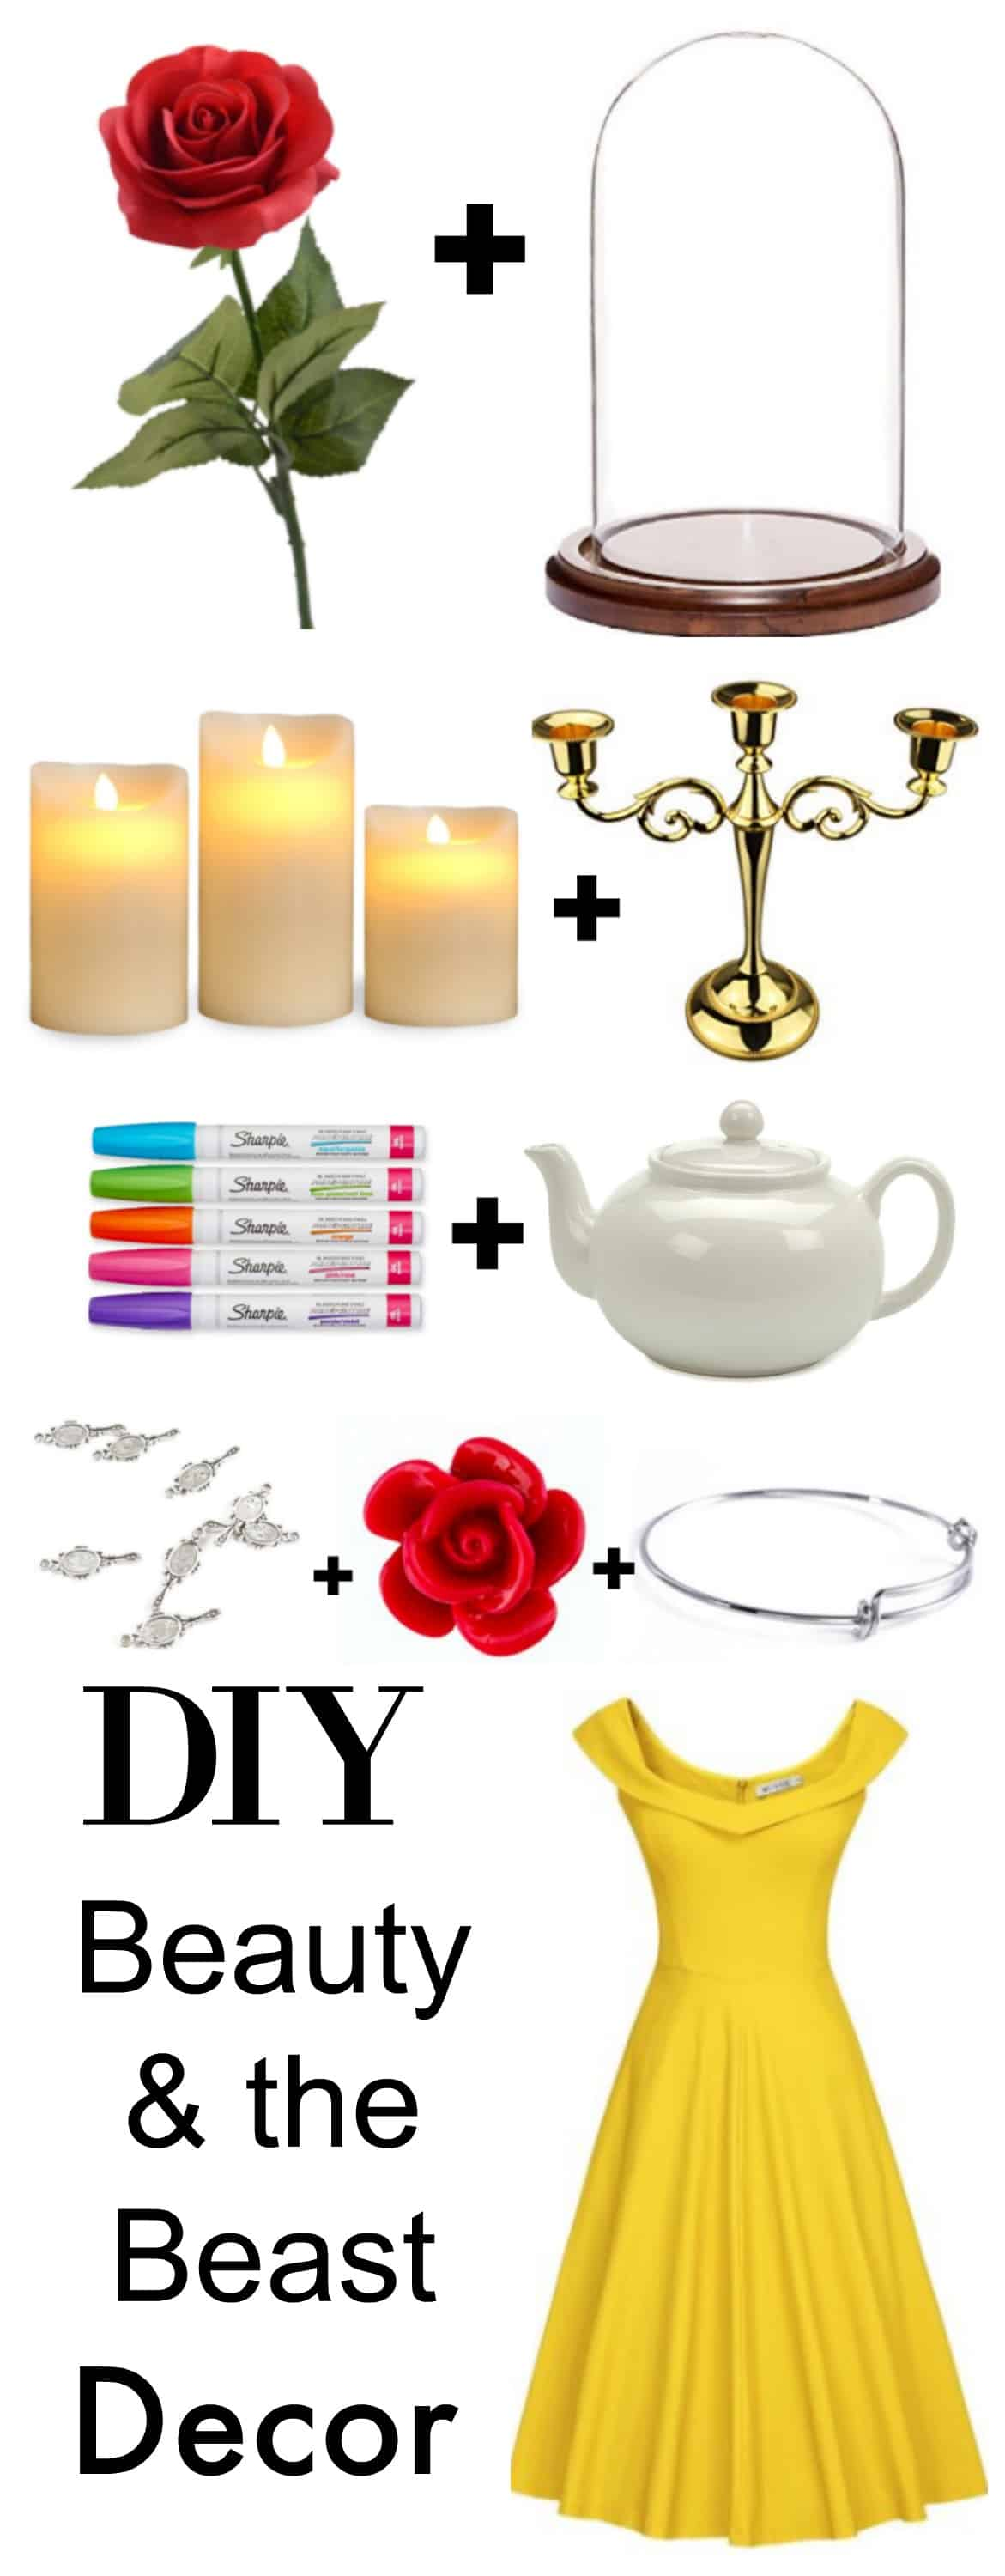 DIY Beauty and the Beast Party Decor